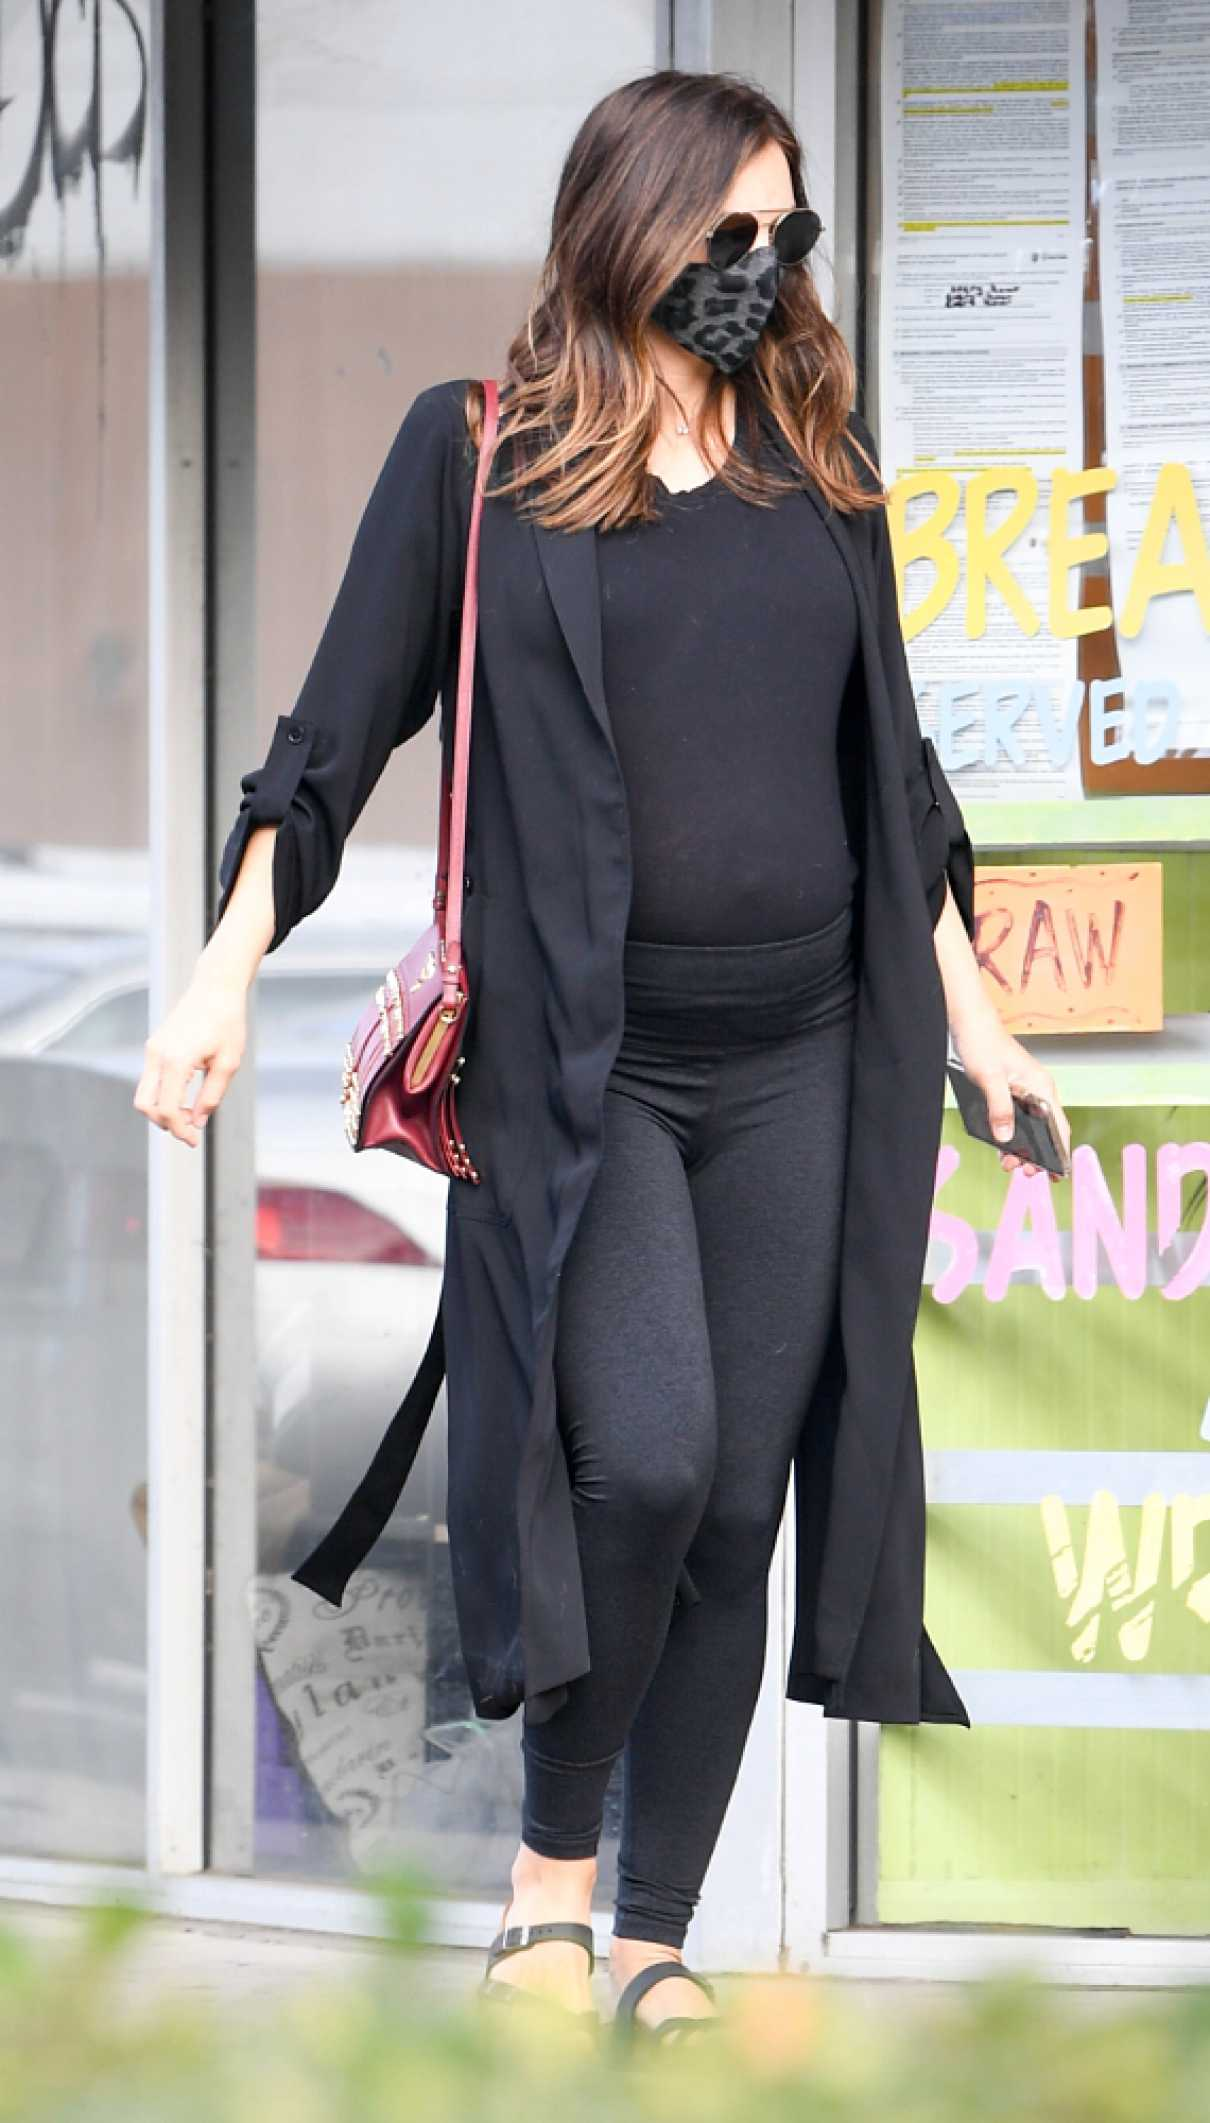 Katharine McPhee in a Black Outfit